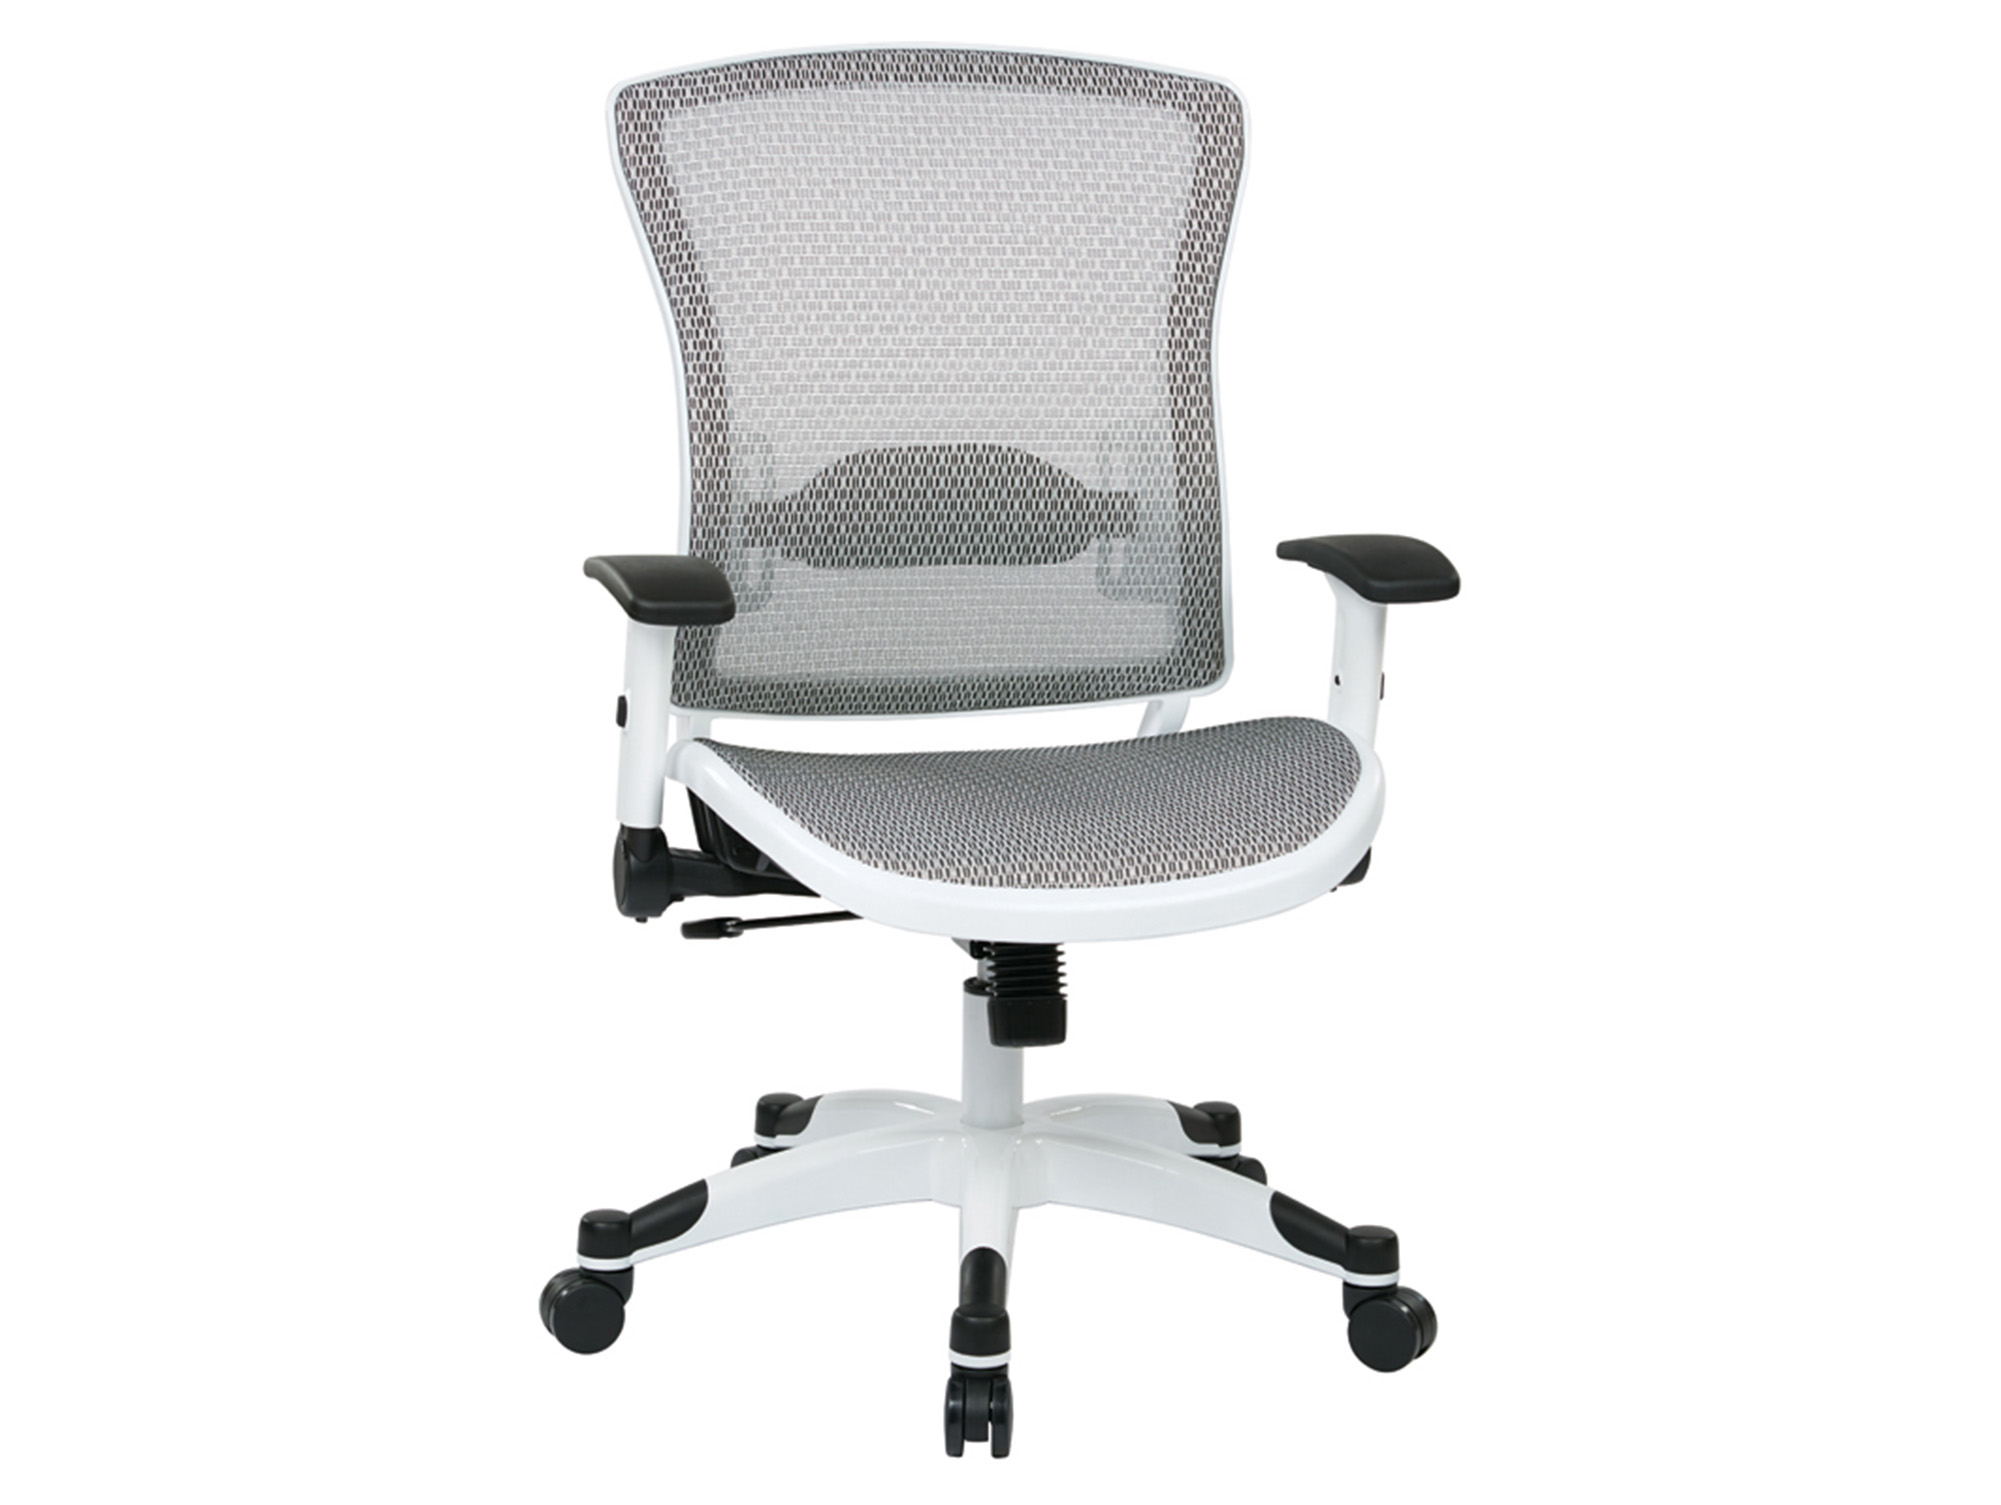 ergonomic seating office task chairs chairs for office